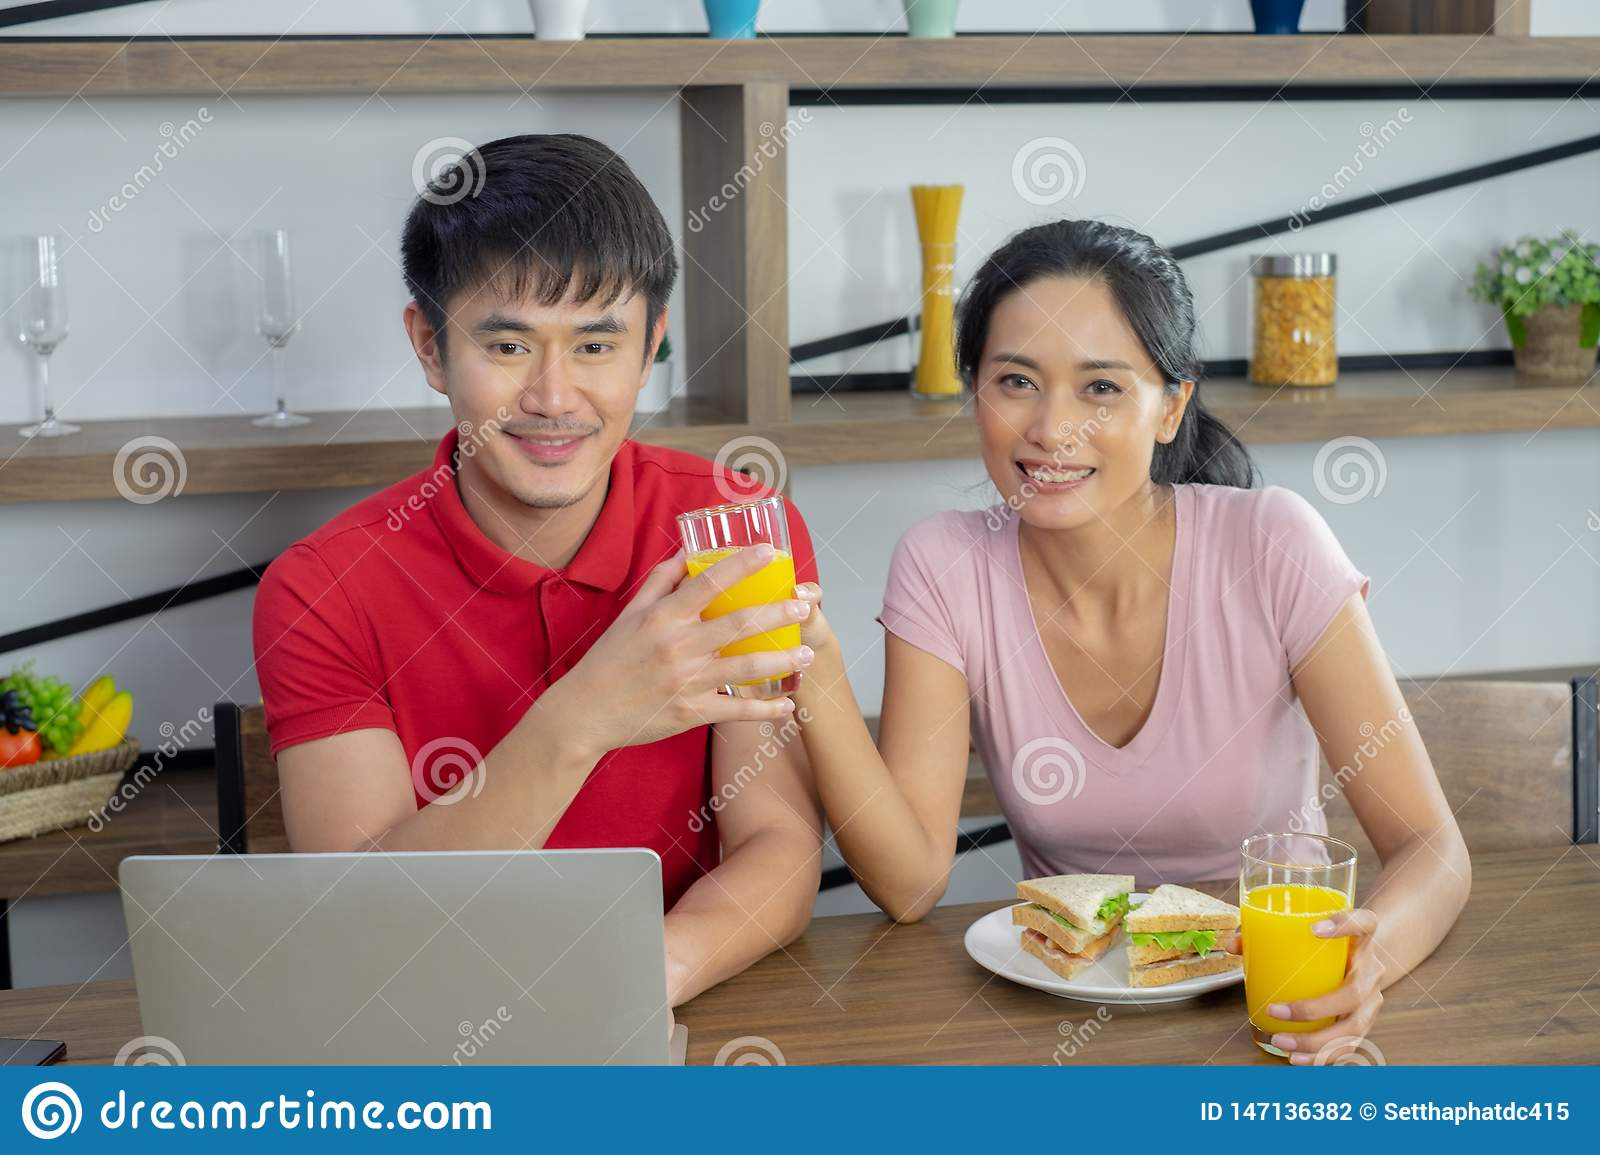 Asian couple, sitting at the dining table. Both of them are smiling happily. woman send the glass of orange juice to the male. And